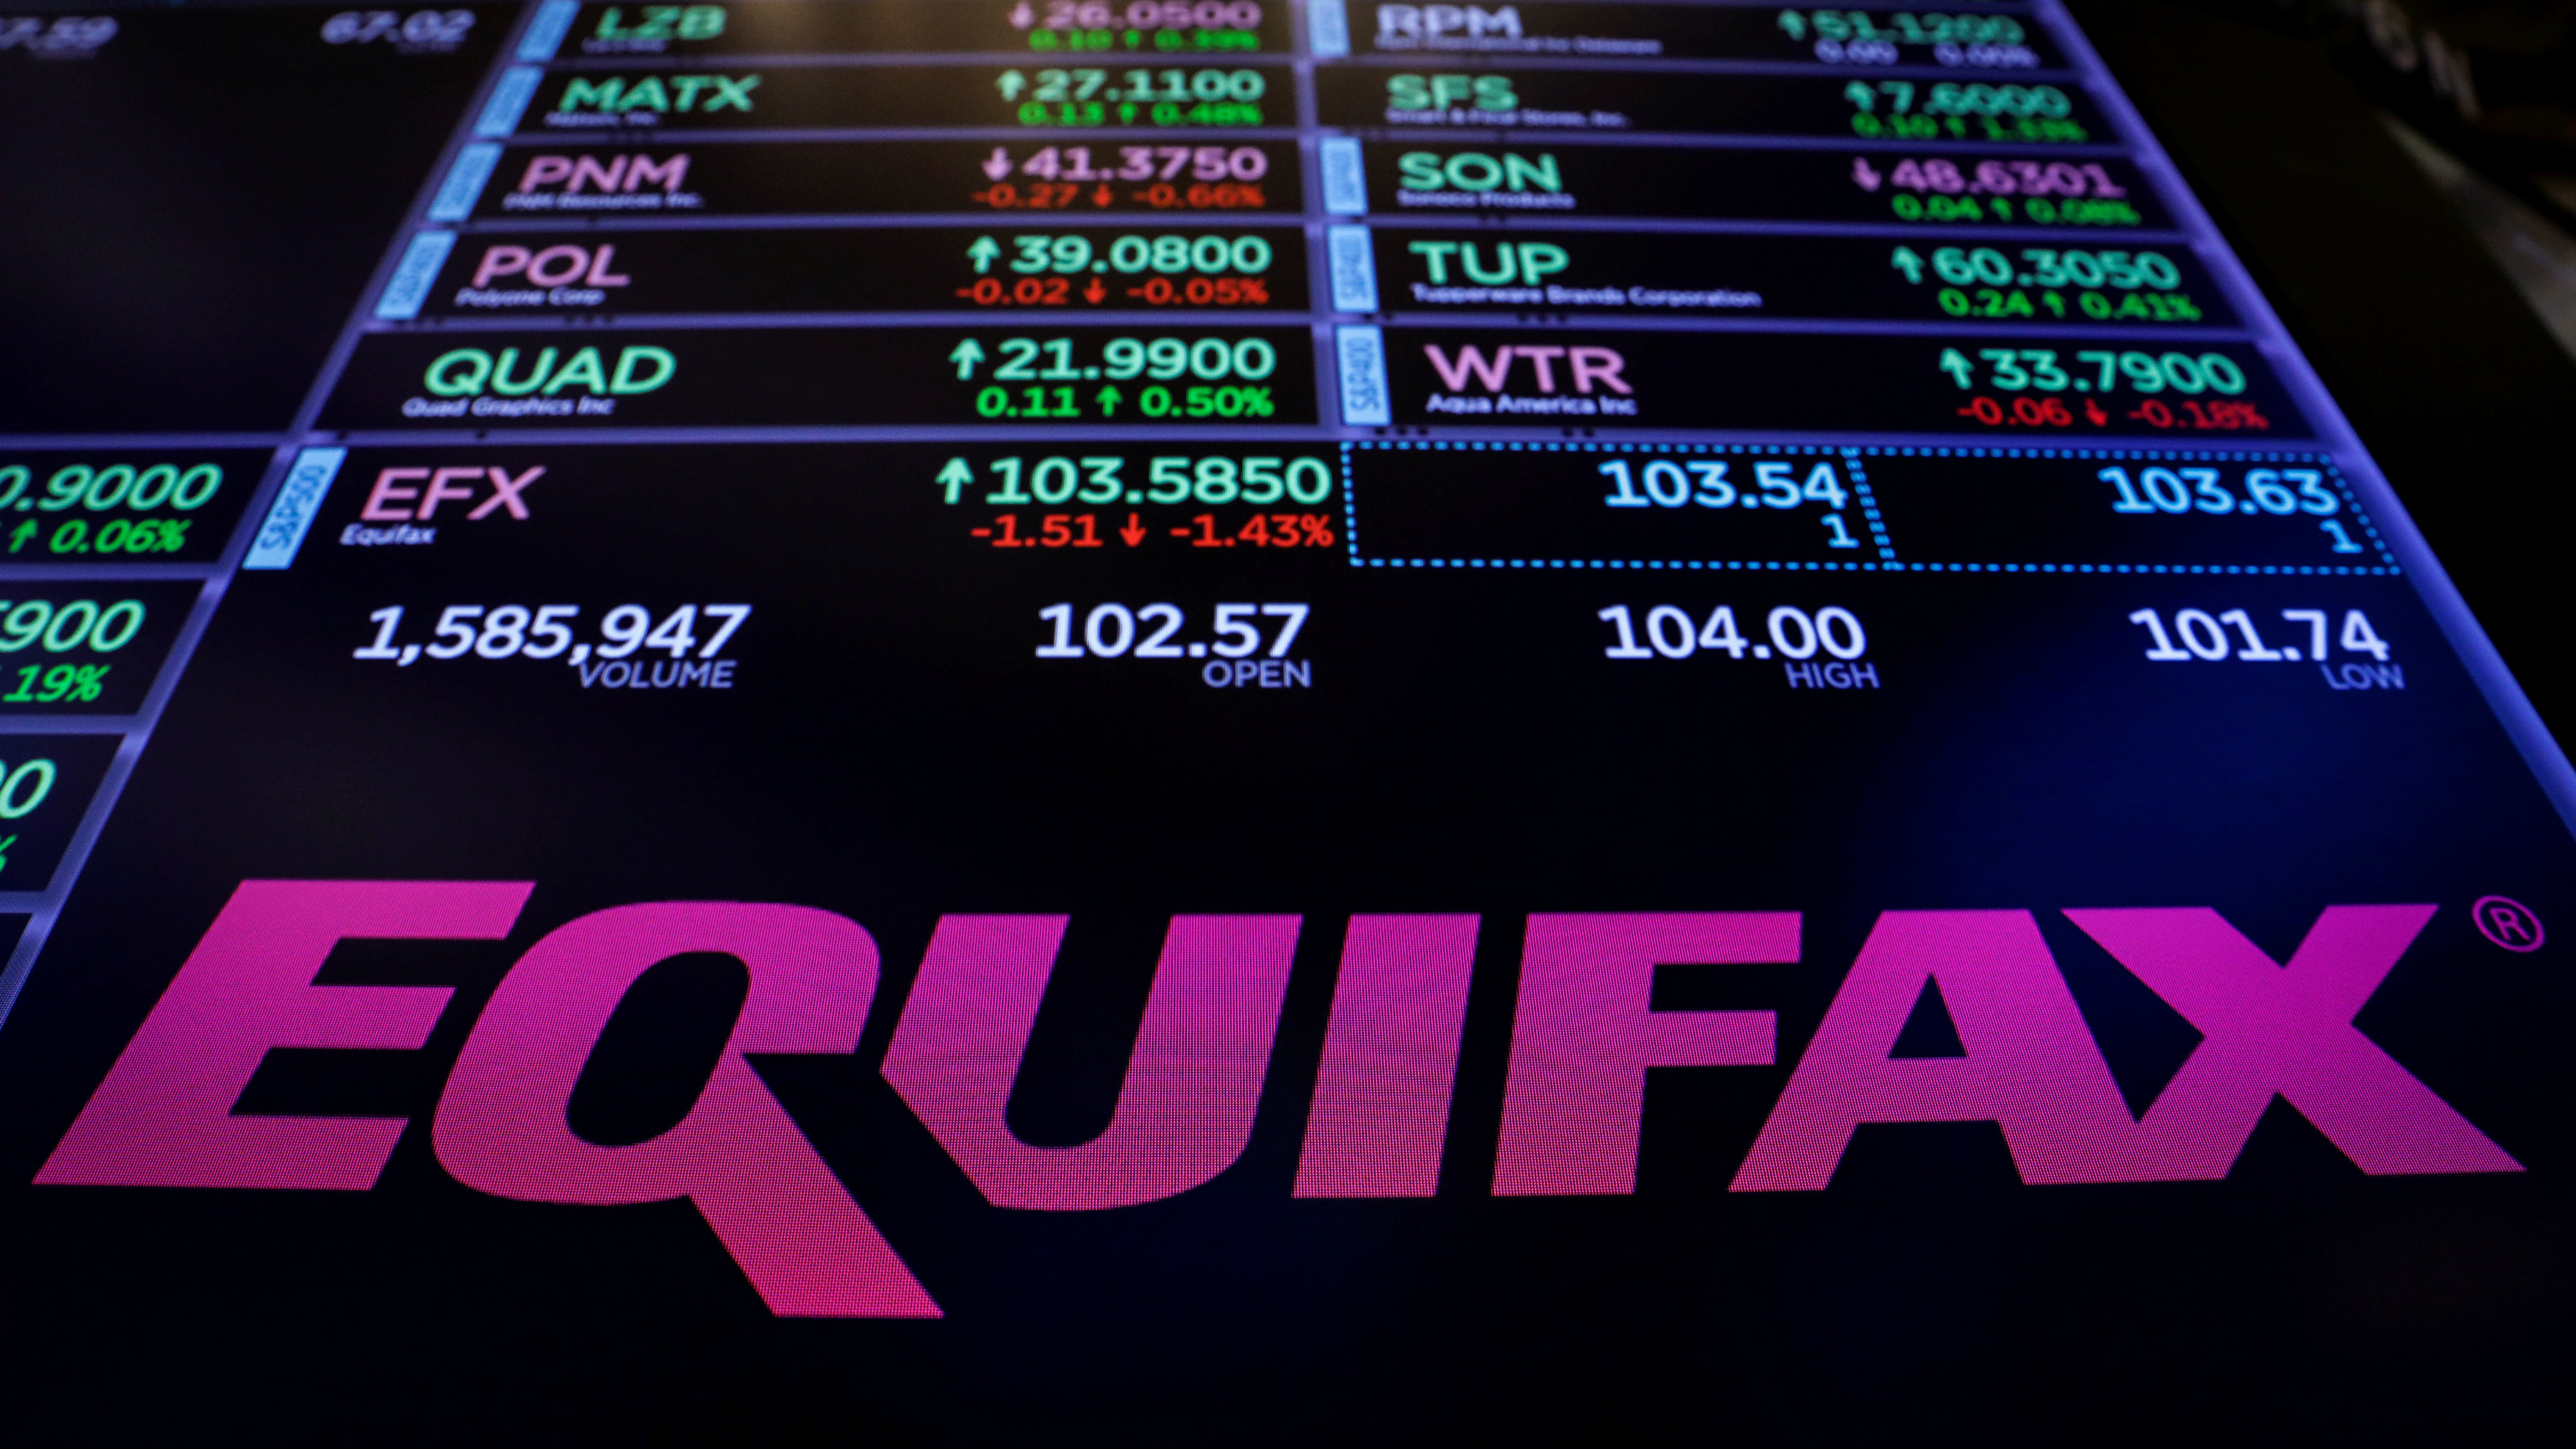 The logo and trading information for Credit reporting company Equifax Inc. are displayed on a screen on the floor of the New York Stock Exchange (NYSE) in New York, U.S., September 26, 2017.